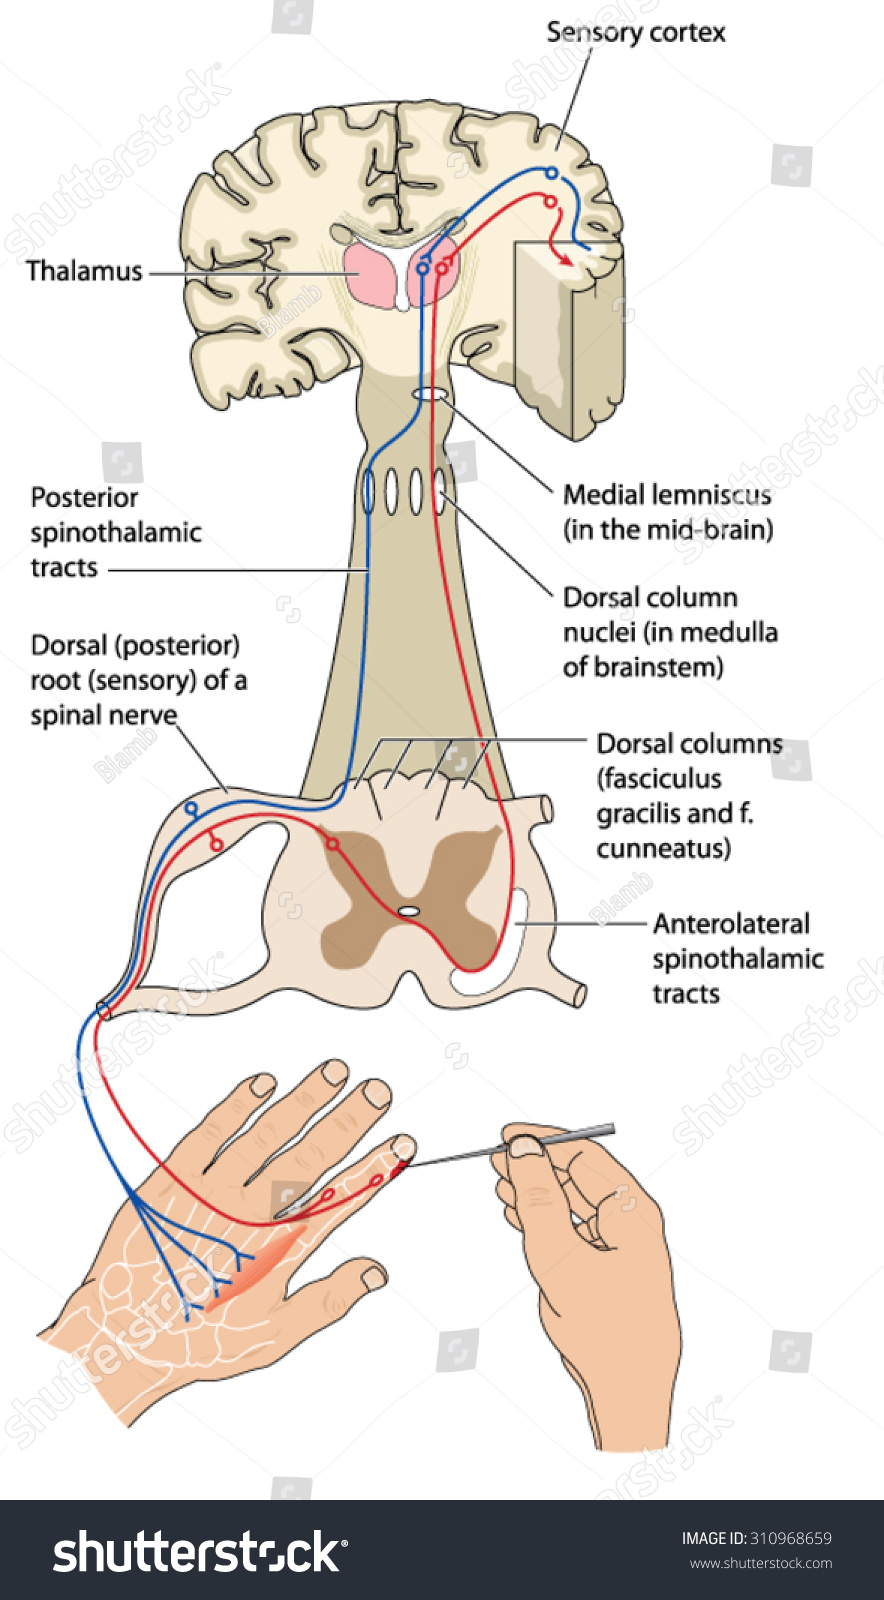 hight resolution of sensory and motor nerve pathways from a stimulus to the sensory cortex and back to muscle